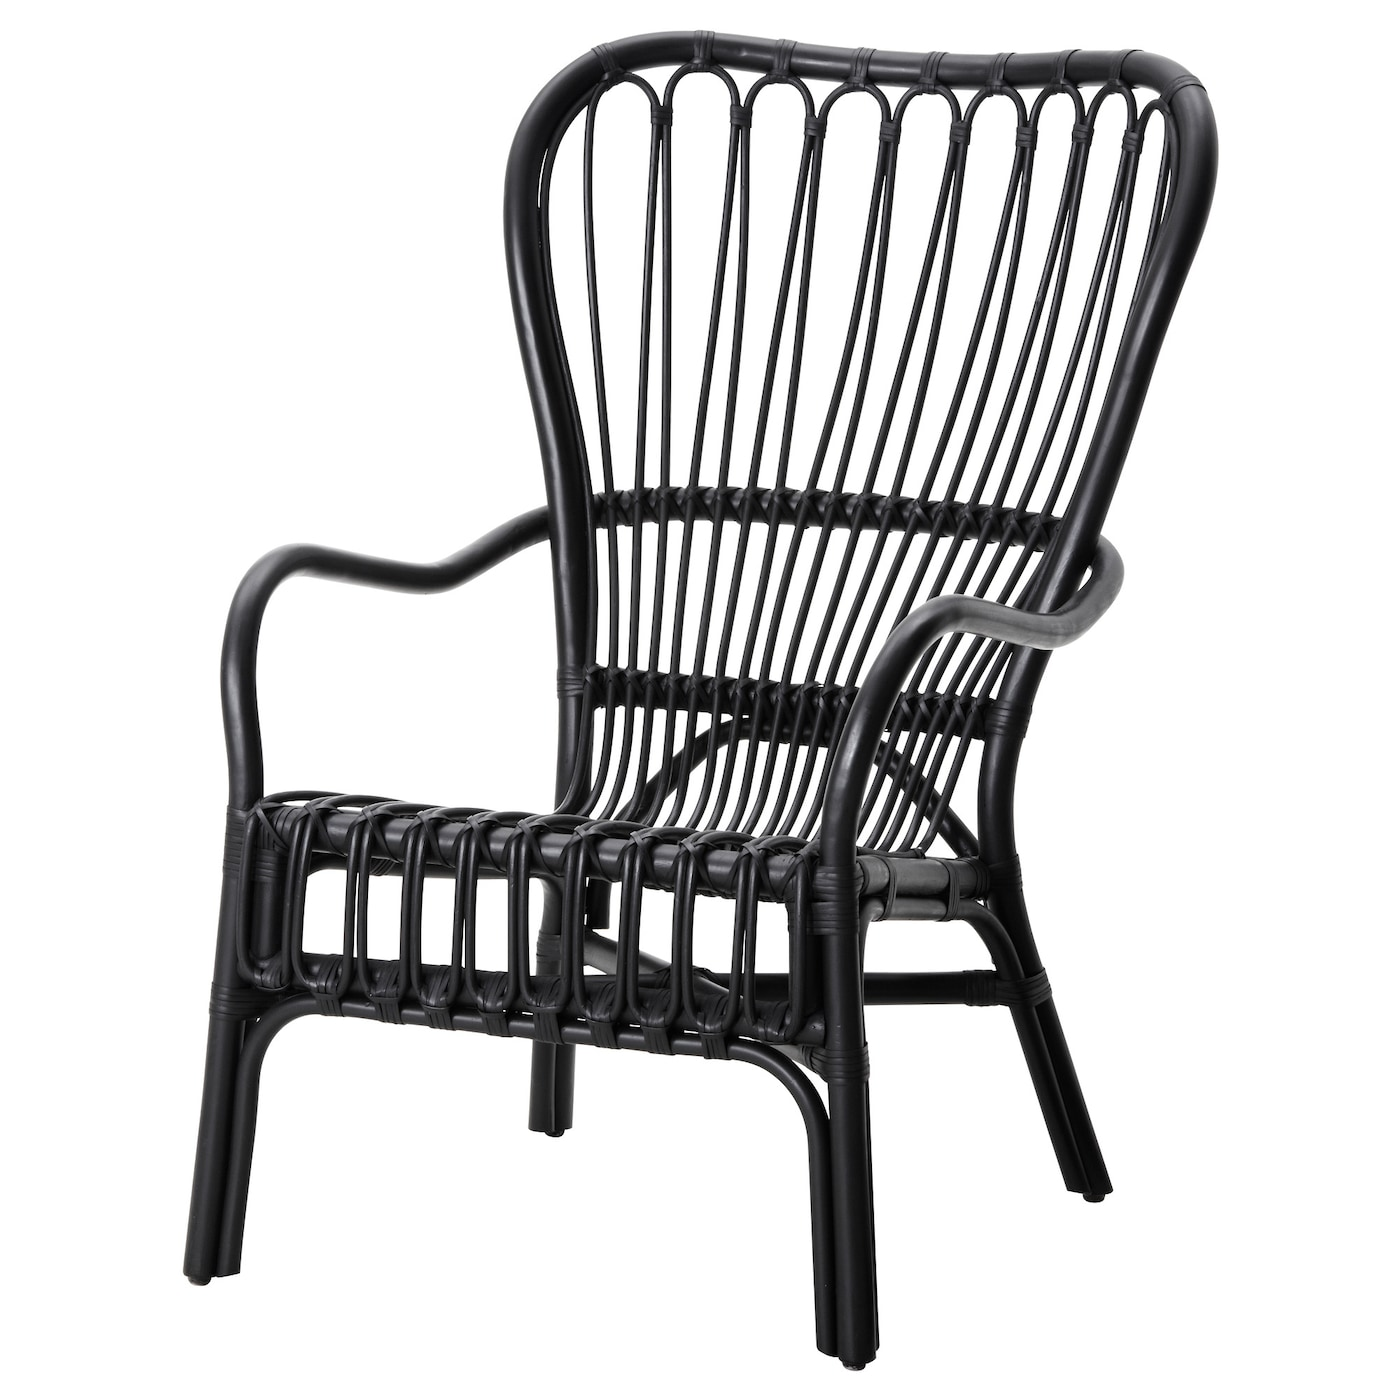 rattan wicker chairs ikea ireland dublin. Black Bedroom Furniture Sets. Home Design Ideas